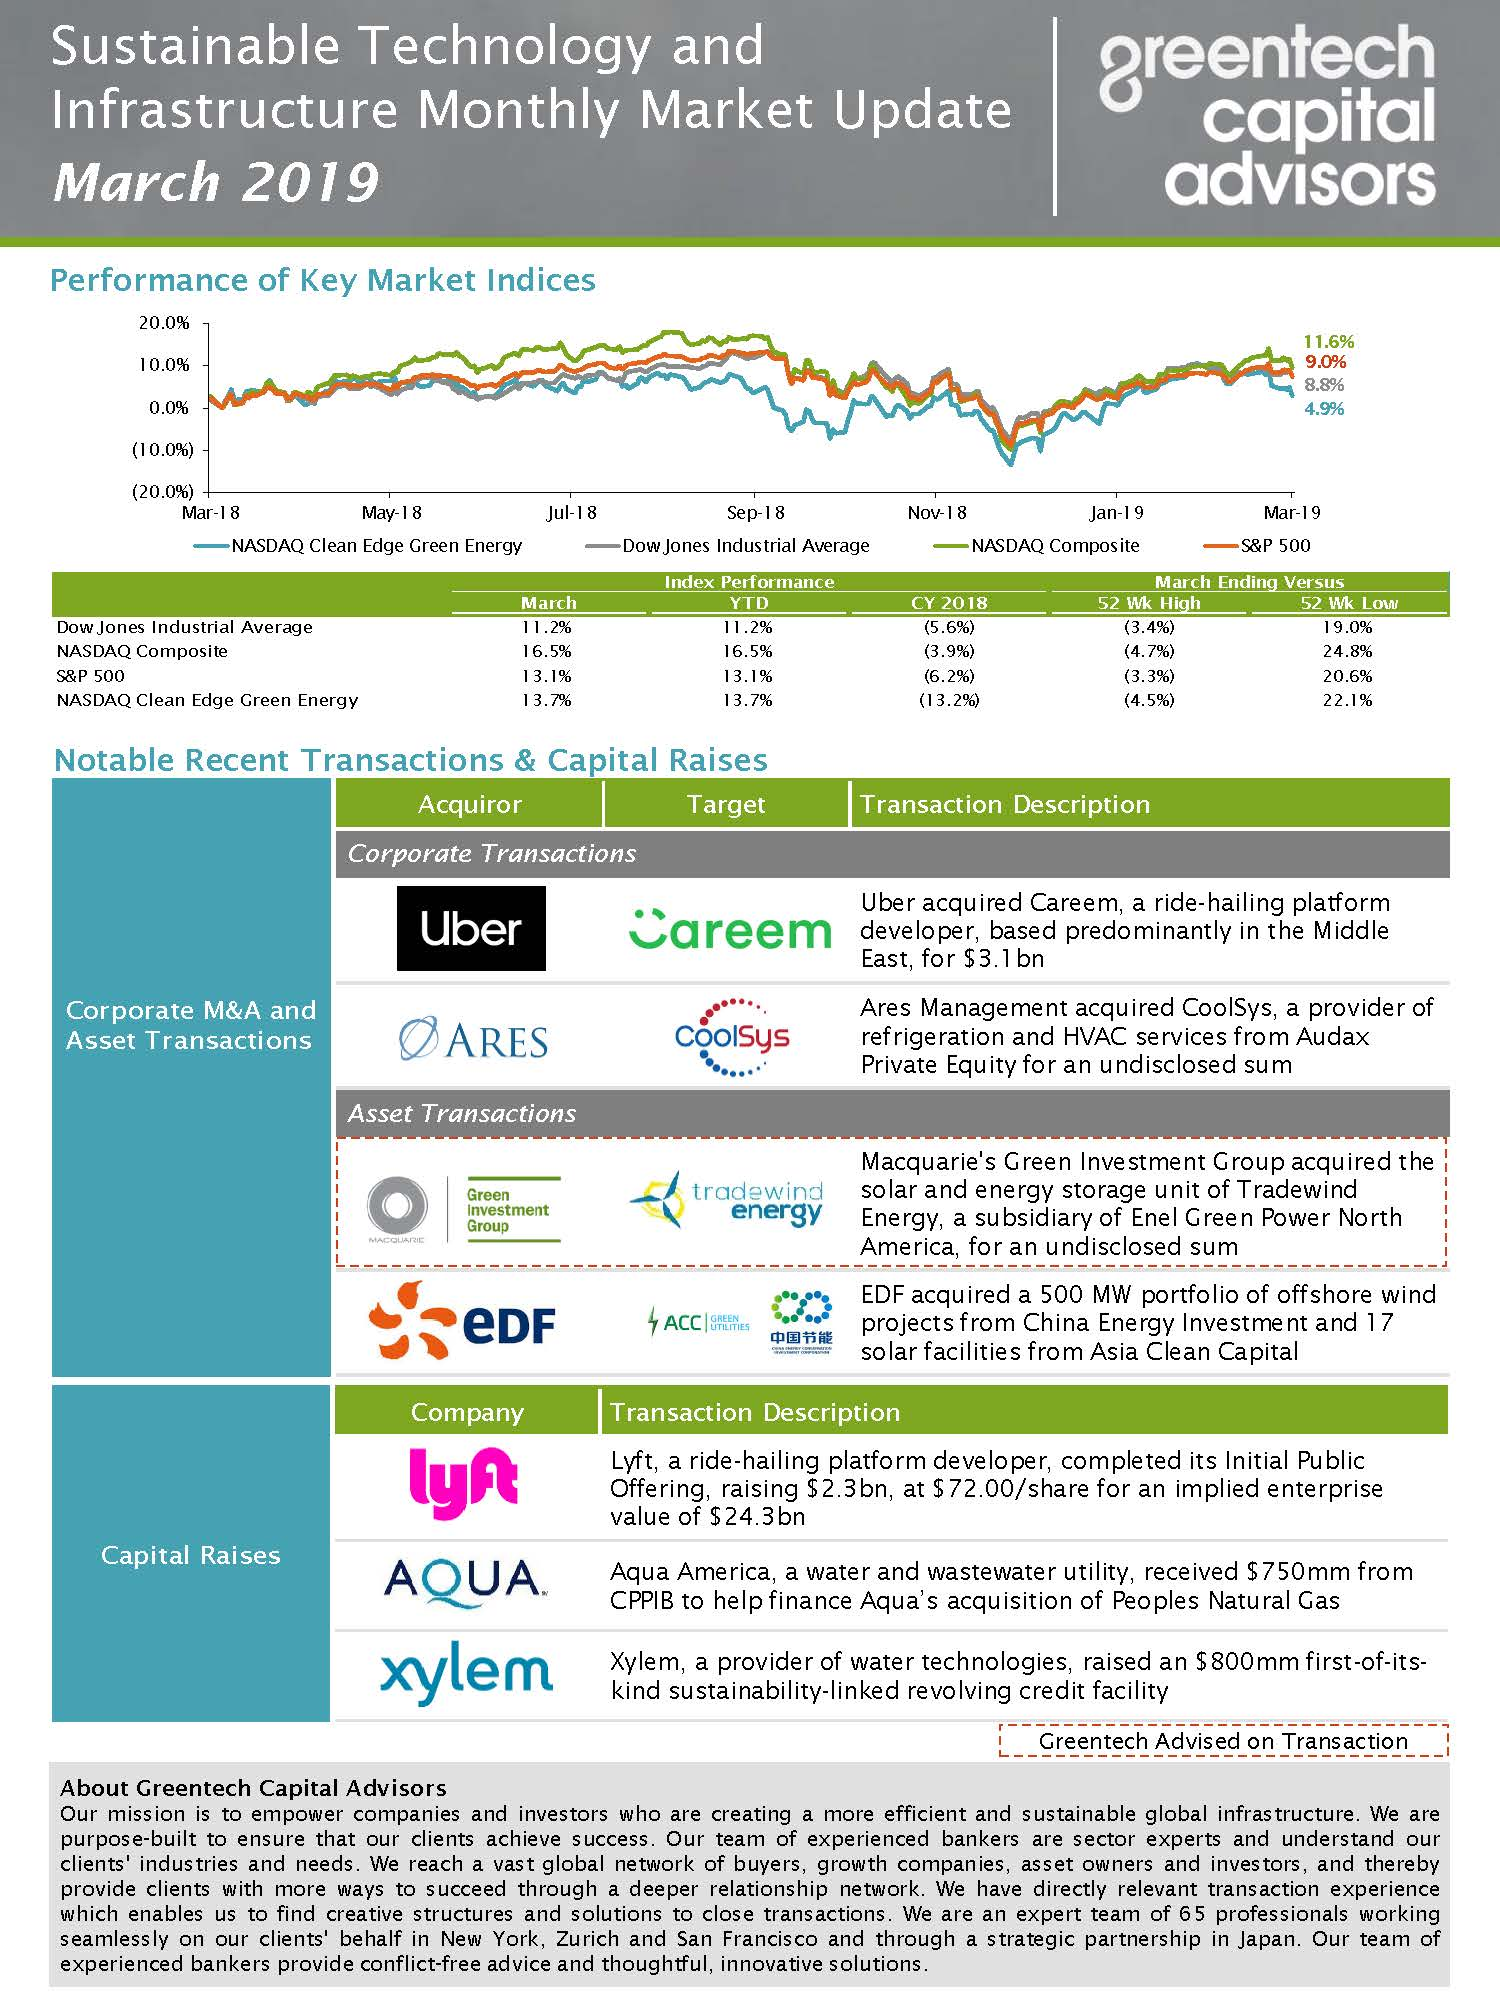 Sustainable Investing Monthly Market Update - March 2019